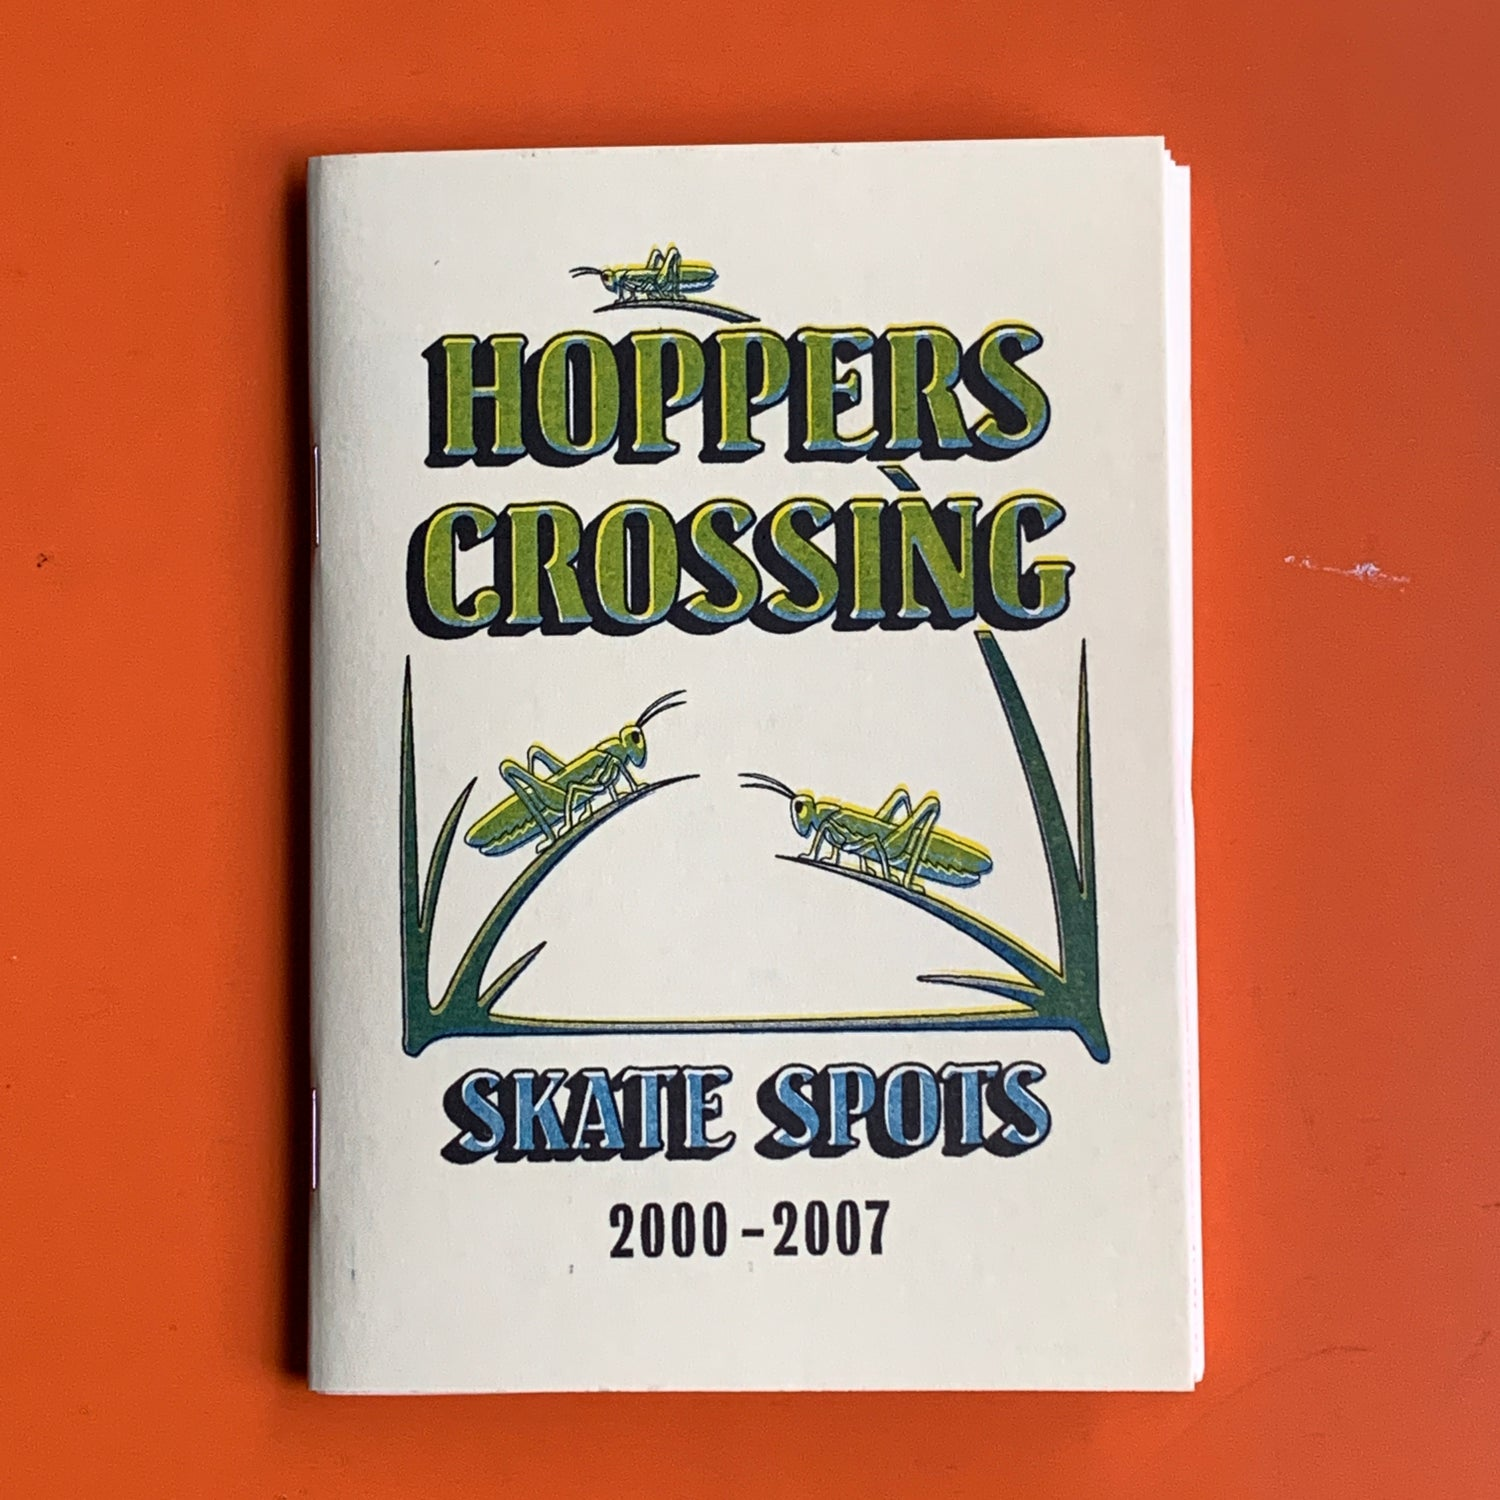 Image of Hoppers Crossing Skate Spots 2000 - 2007